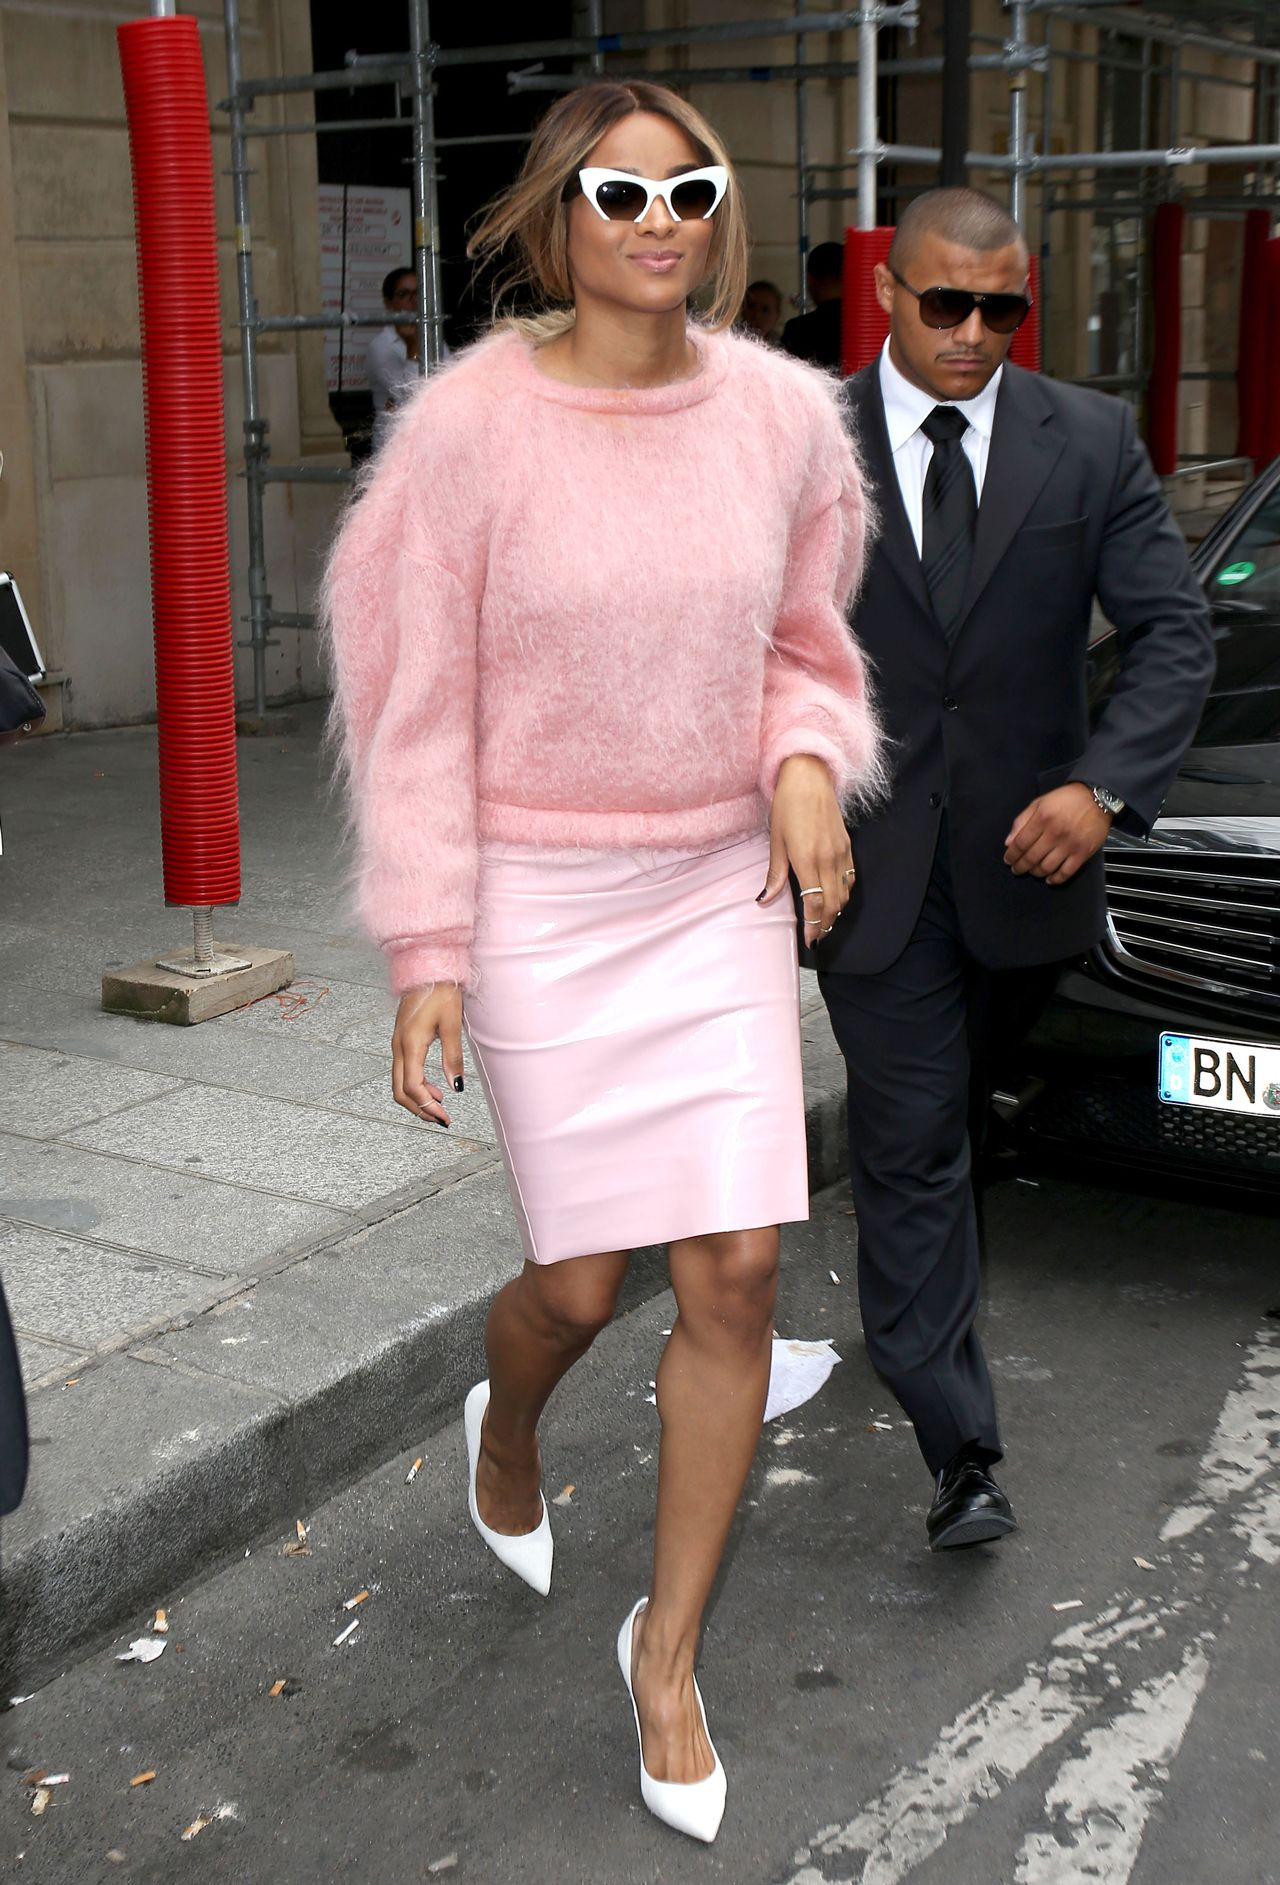 bubblegum pink sweater by Doriane Van Overeem and a vinyl skirt ...